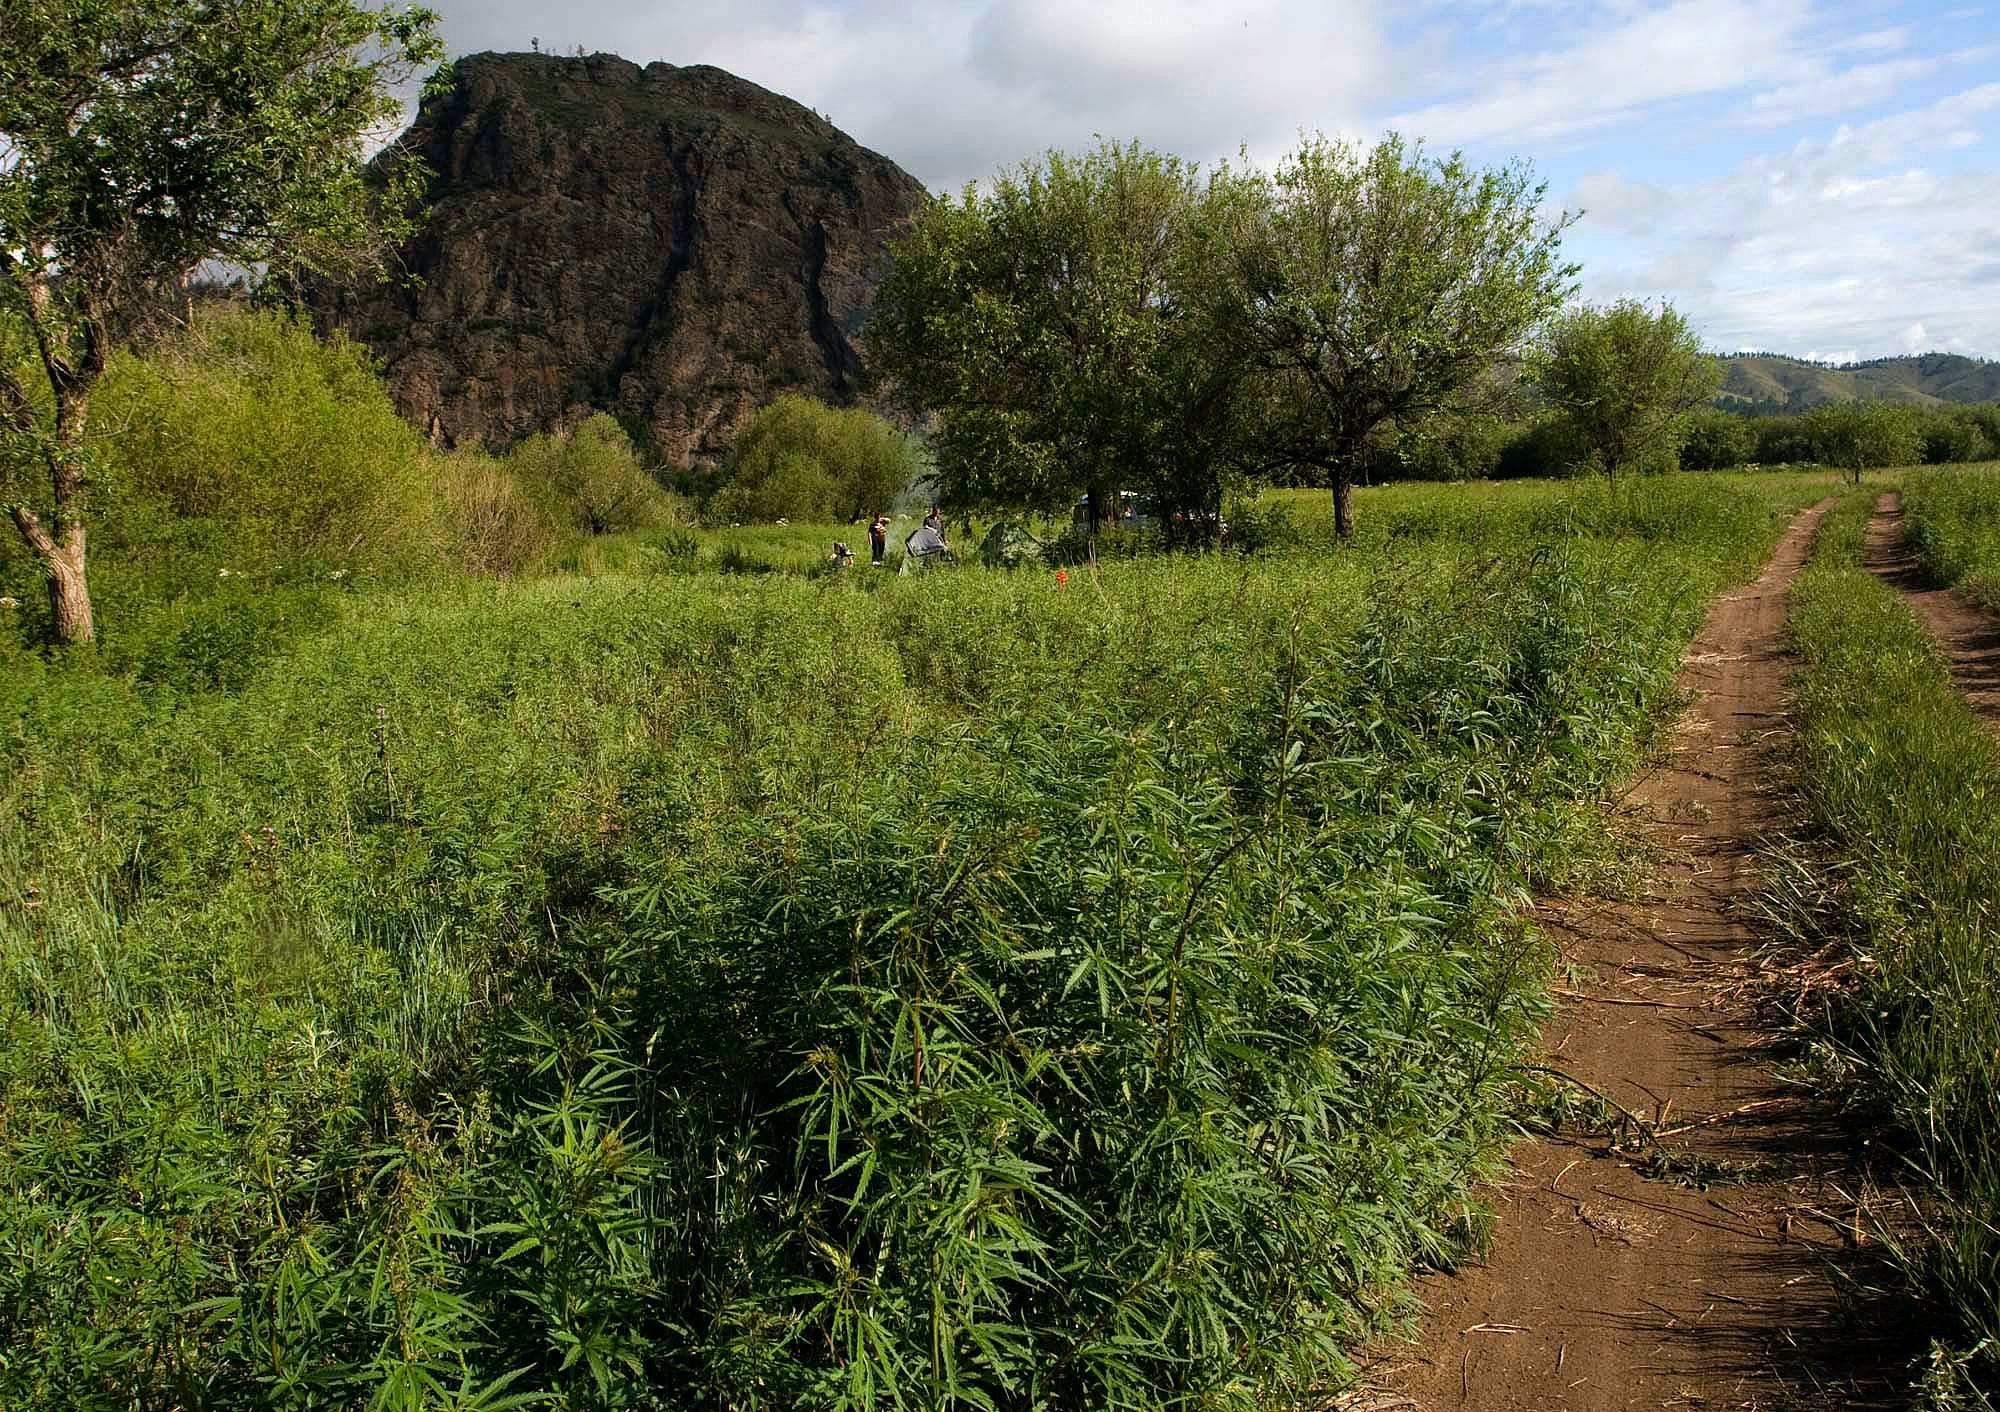 Cannabis used to grow wild in Europe but went extinct before first farmers arrived research finds Congress Blocks Recreational Marijuana Sales In Washington, D.C.